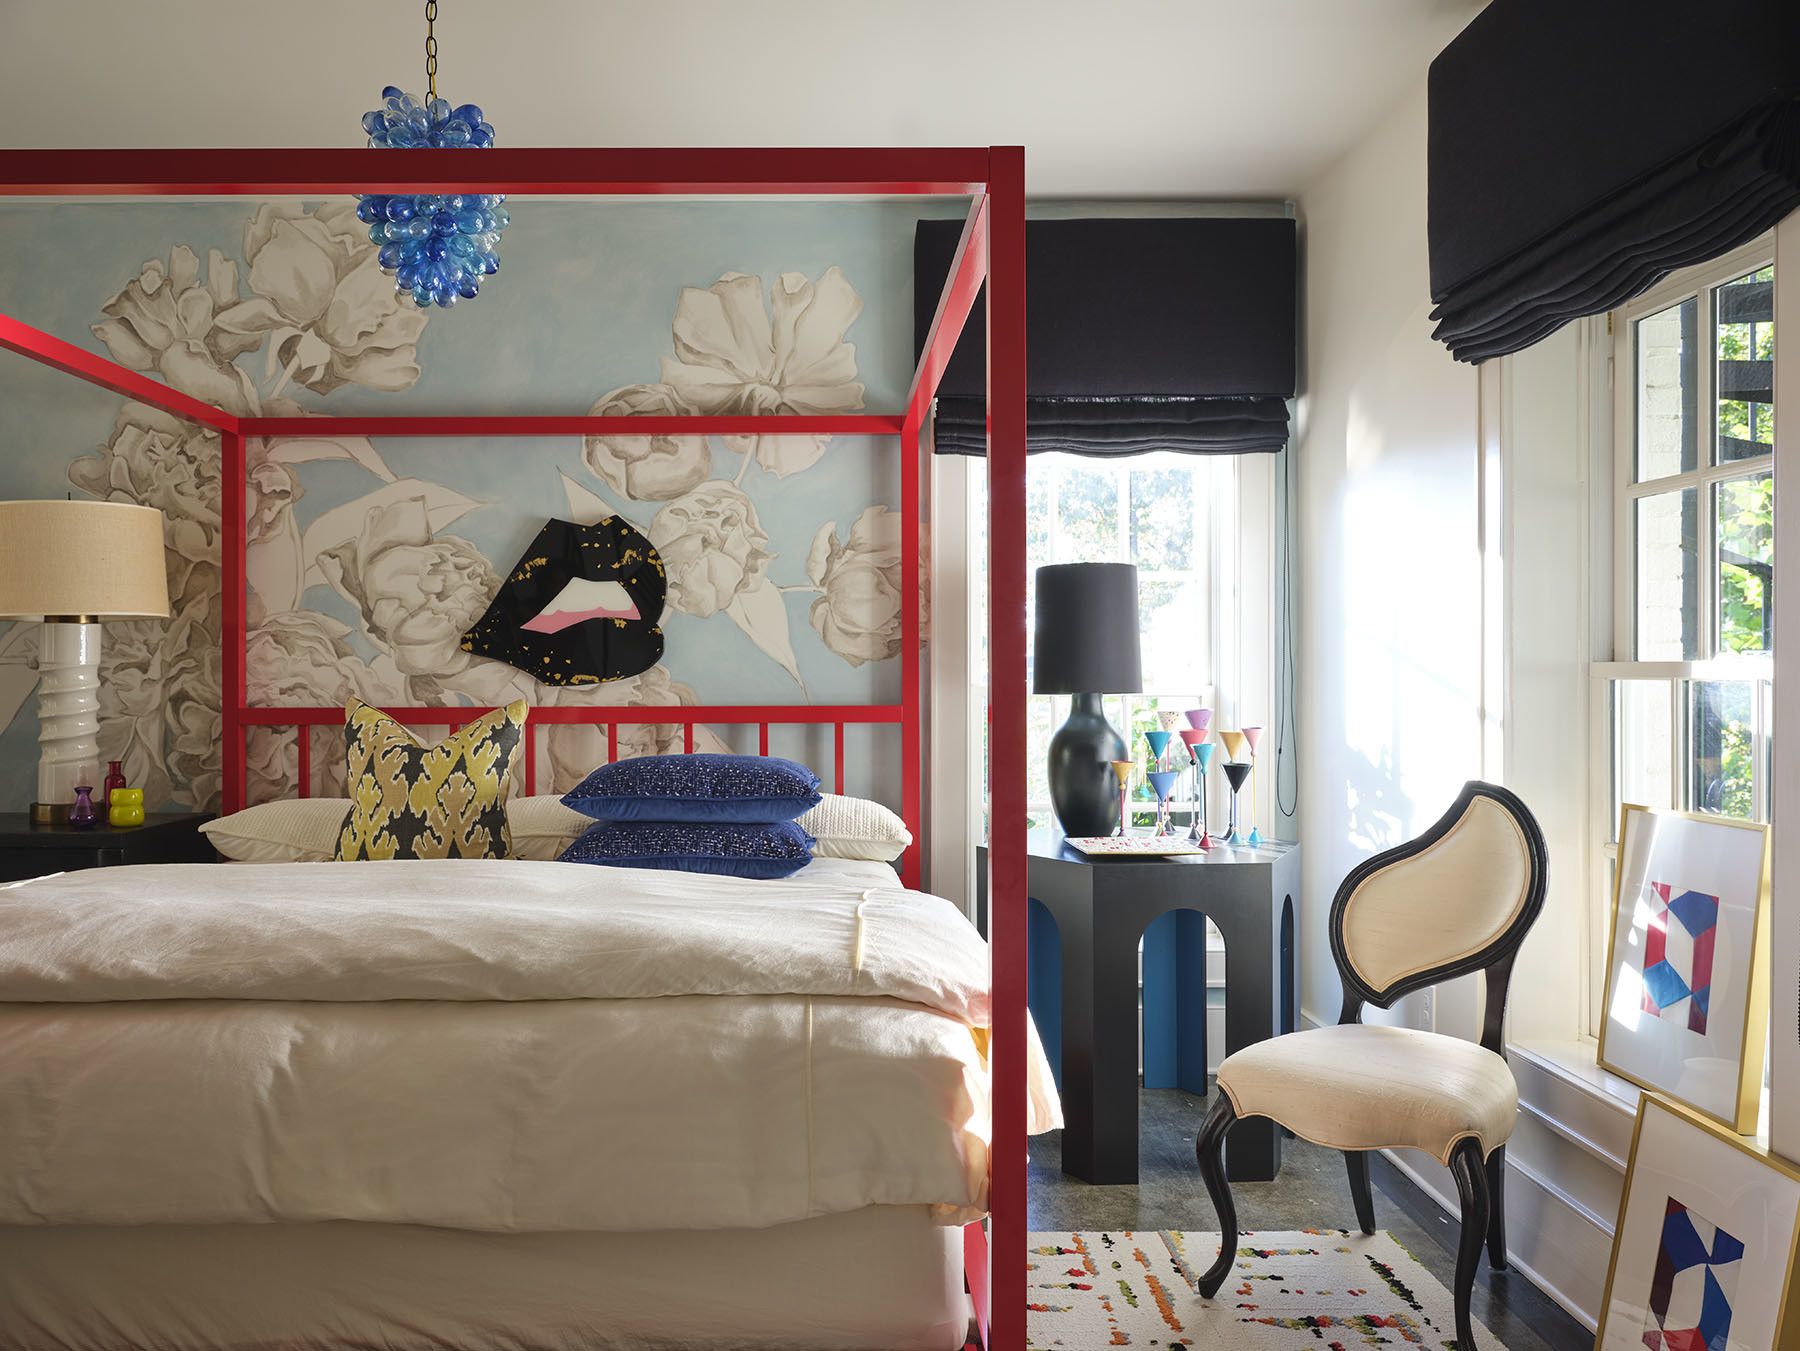 Blehm's passion for sourcing unique vintage furniture comes to the fore in the bedroom with varied sculptural pieces and ample texture. Pottery Barn Bedding | Angela Chrusciaki Blehm Mural and Lips Art | Flor Area Rug | Vintage Pendant Light | Vintage Table Lamps |